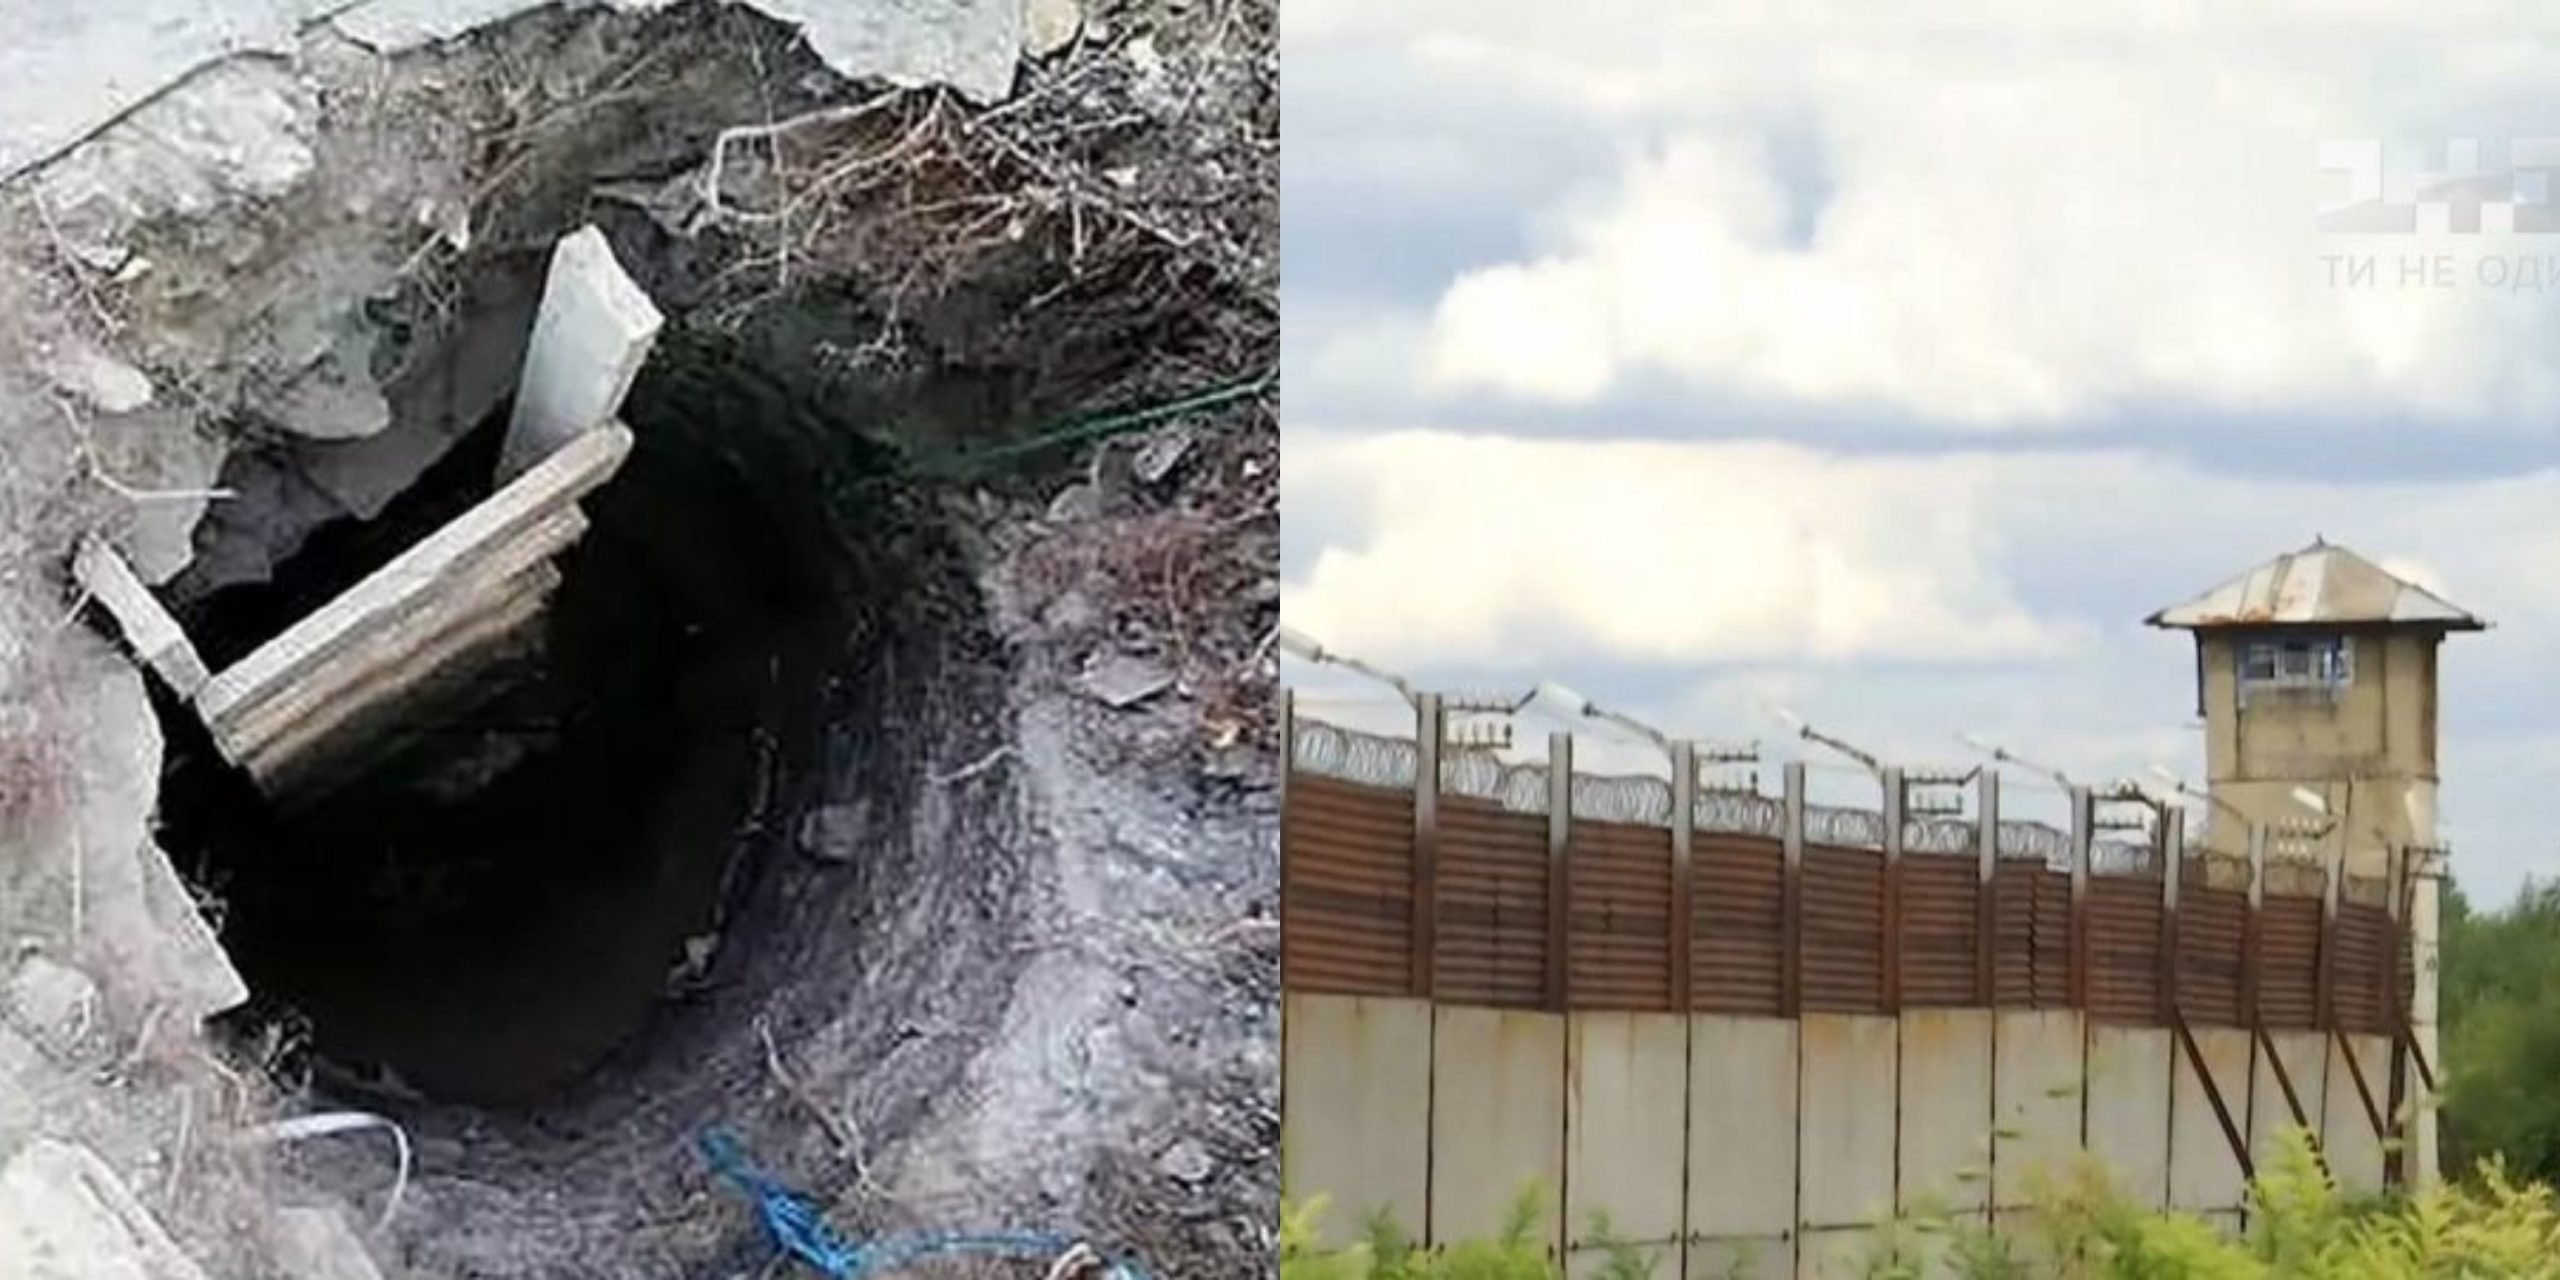 The mother dug a tunnel just to rescue her son from jail